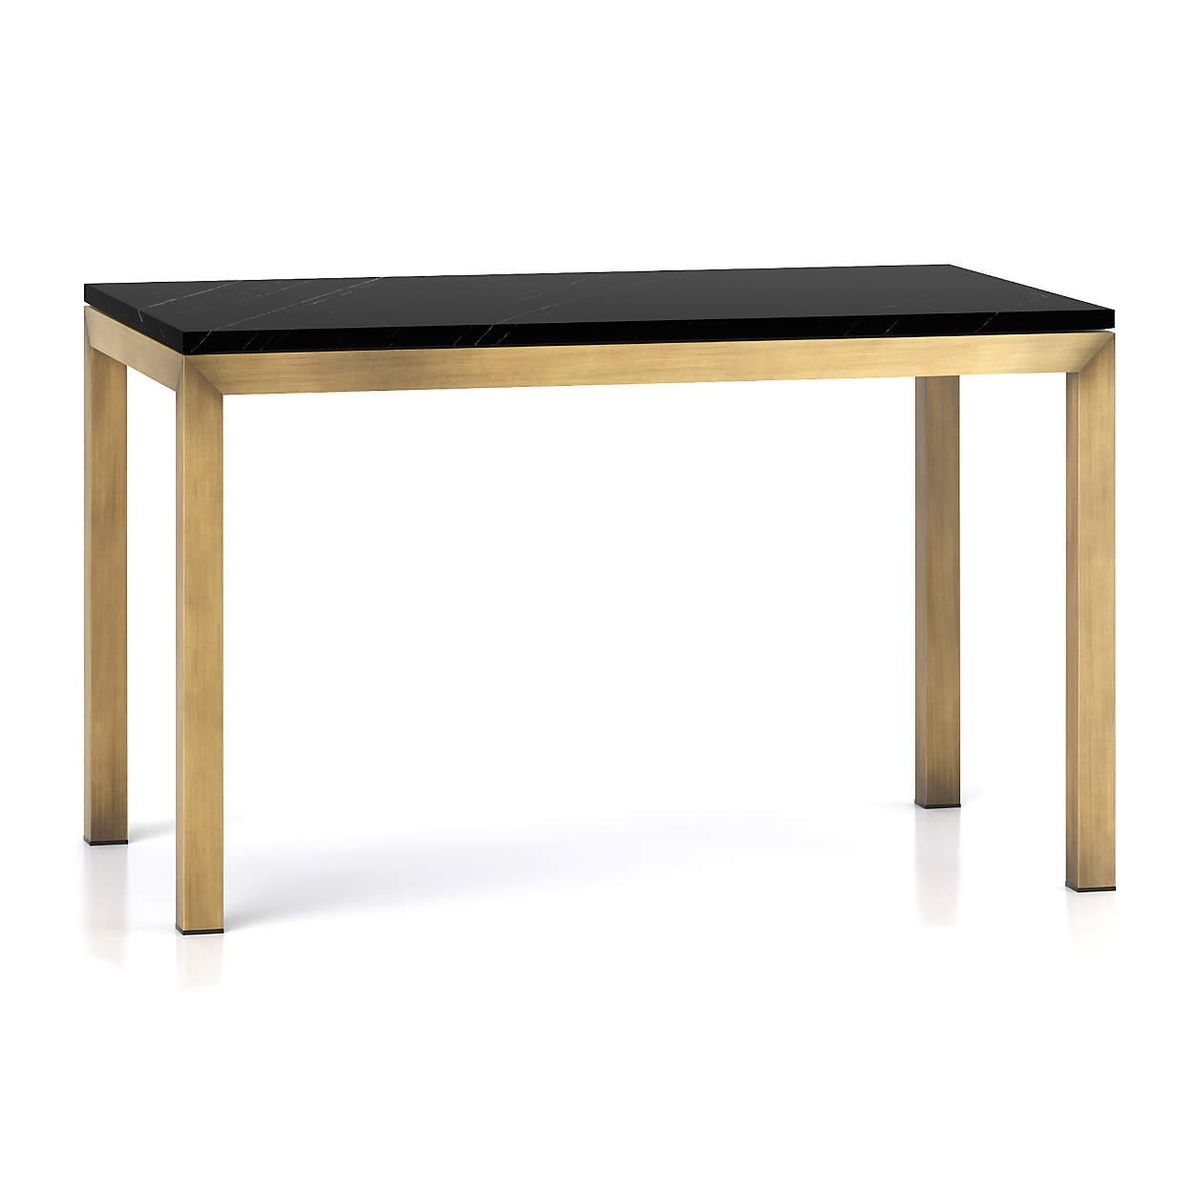 crate and barrel parsons black marble top brass base dining table